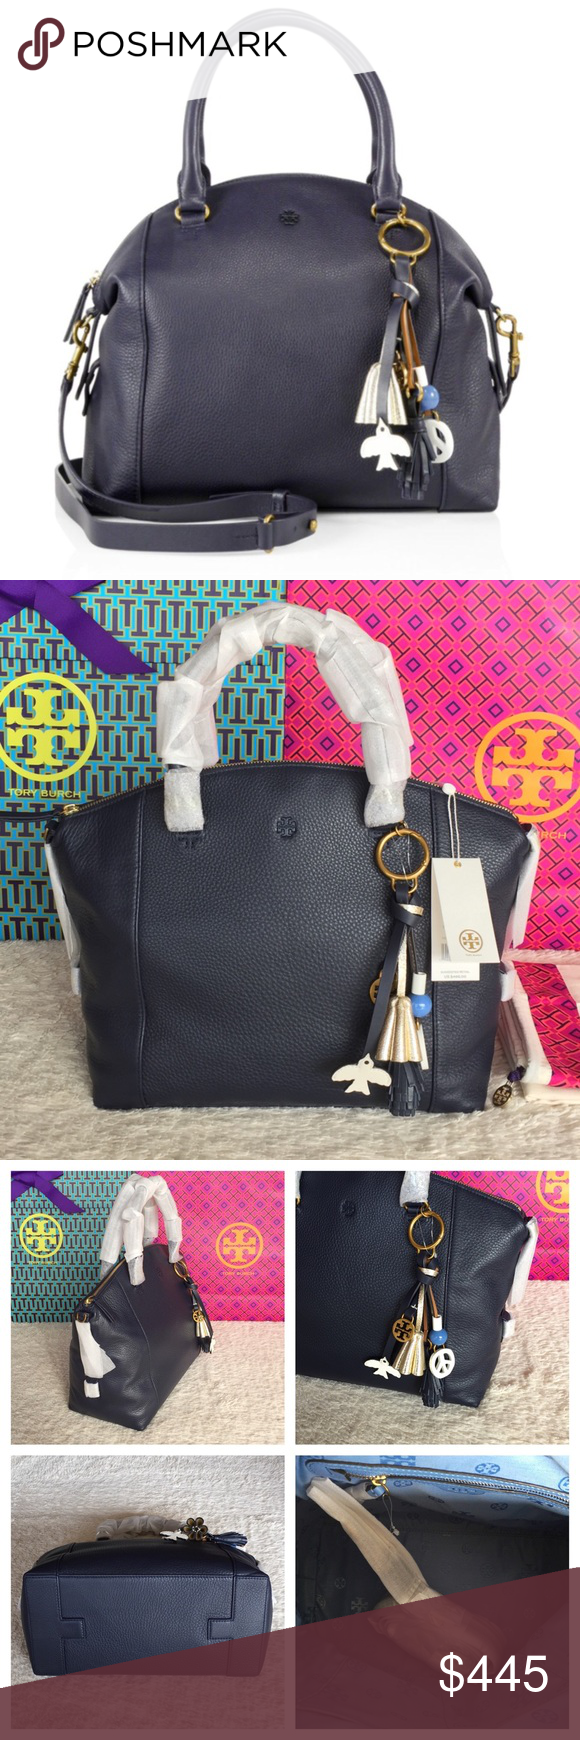 9ae21c94734 BRAND NEW TORY BURCH PEACE SATCHEL  NAVY Authentic. Brand new with tags.  Color